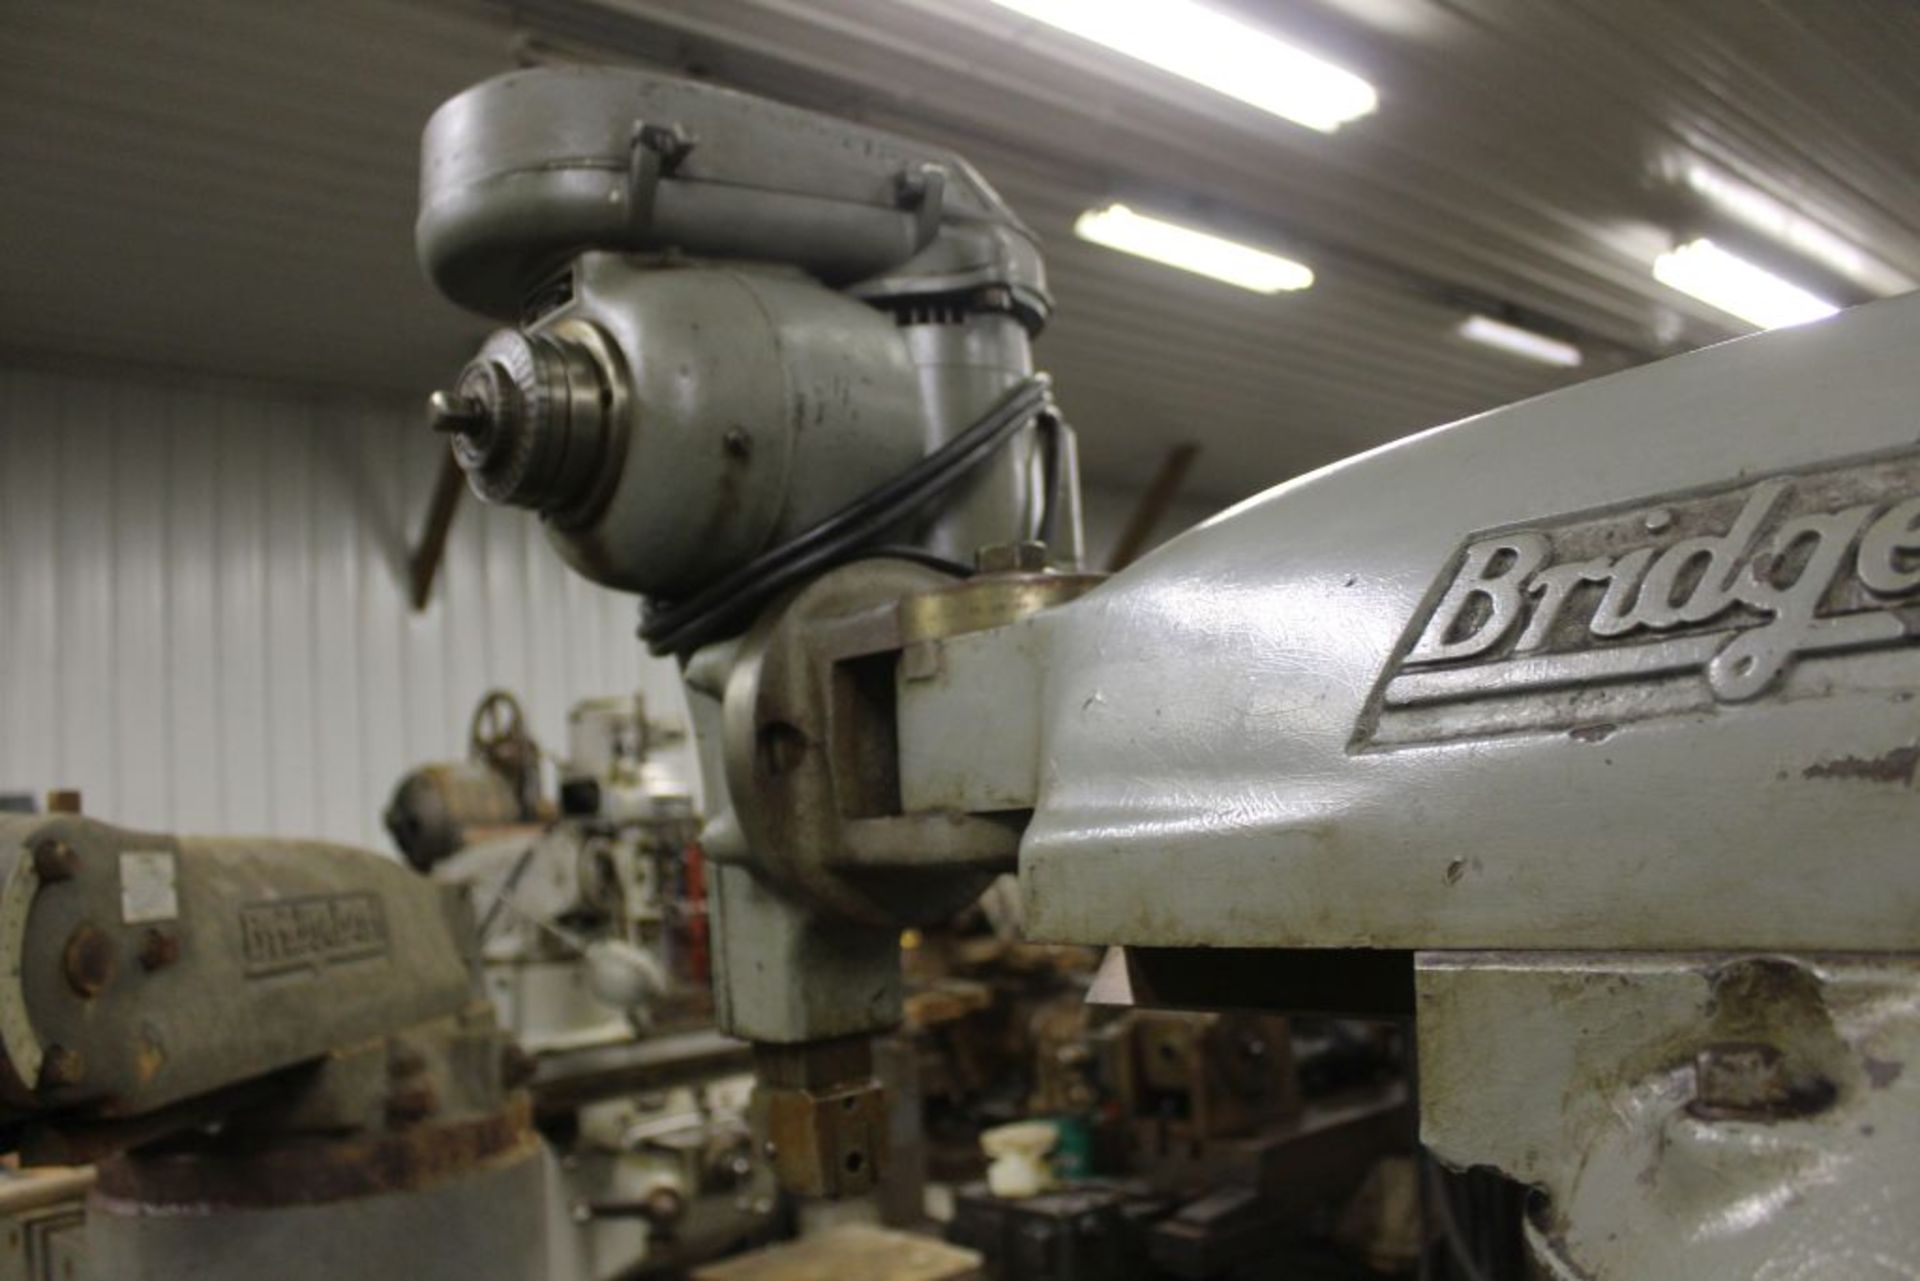 """Bridgeport mill, model 12-BR, sn 83978, 9"""" x 48"""" bed, manual (not down power), shaping attachment. - Image 6 of 15"""